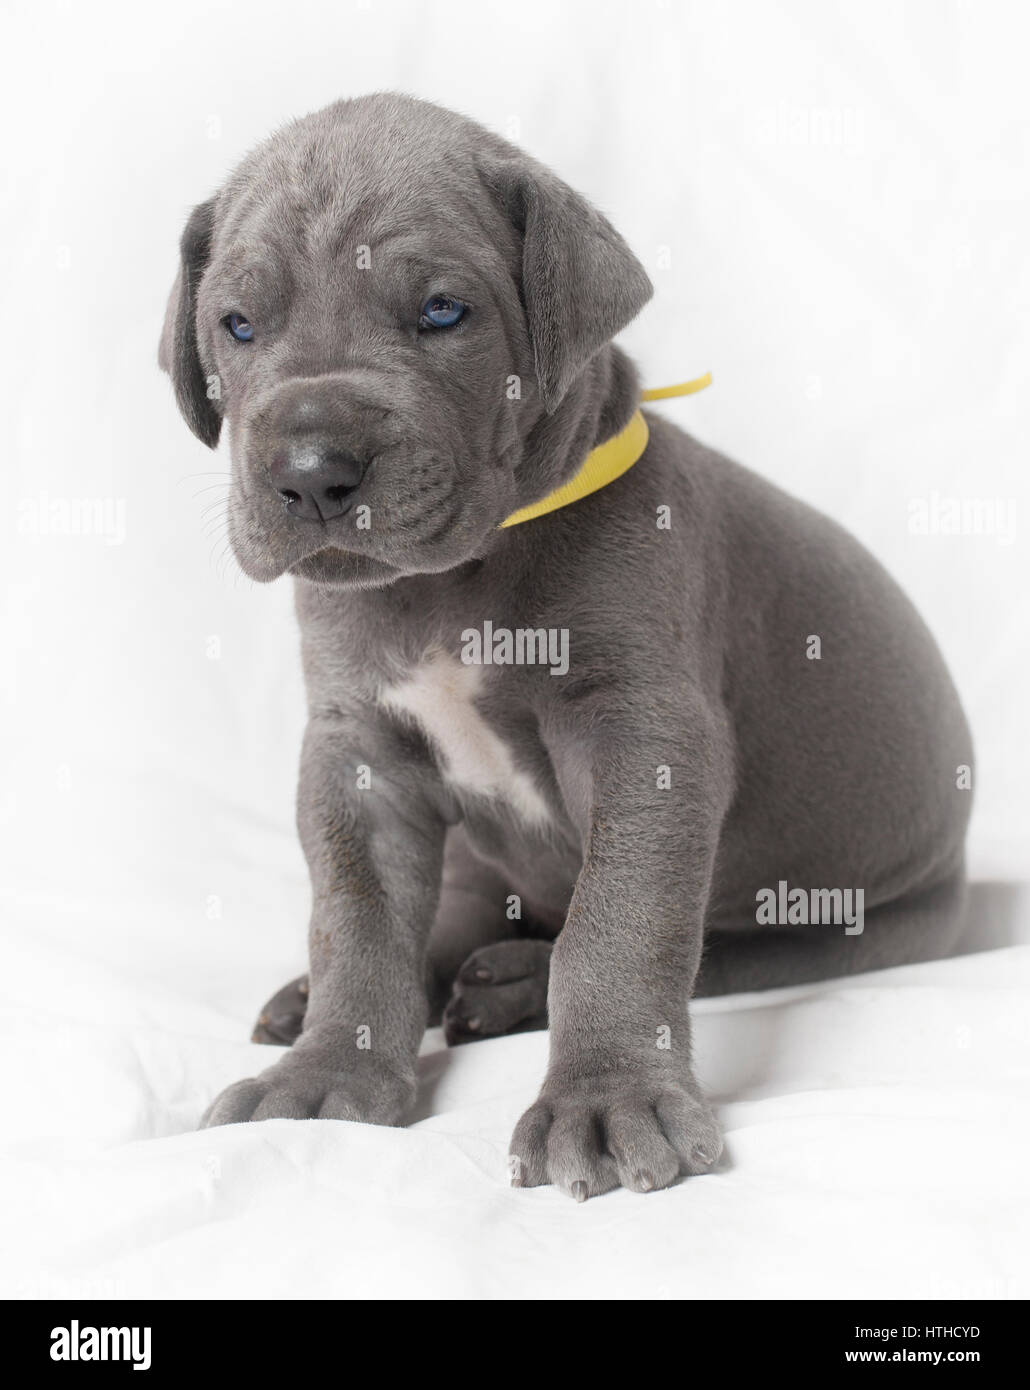 Purebred Great Dane Puppy With Blue Eyes And Yellow Collar On White Stock Photo Alamy